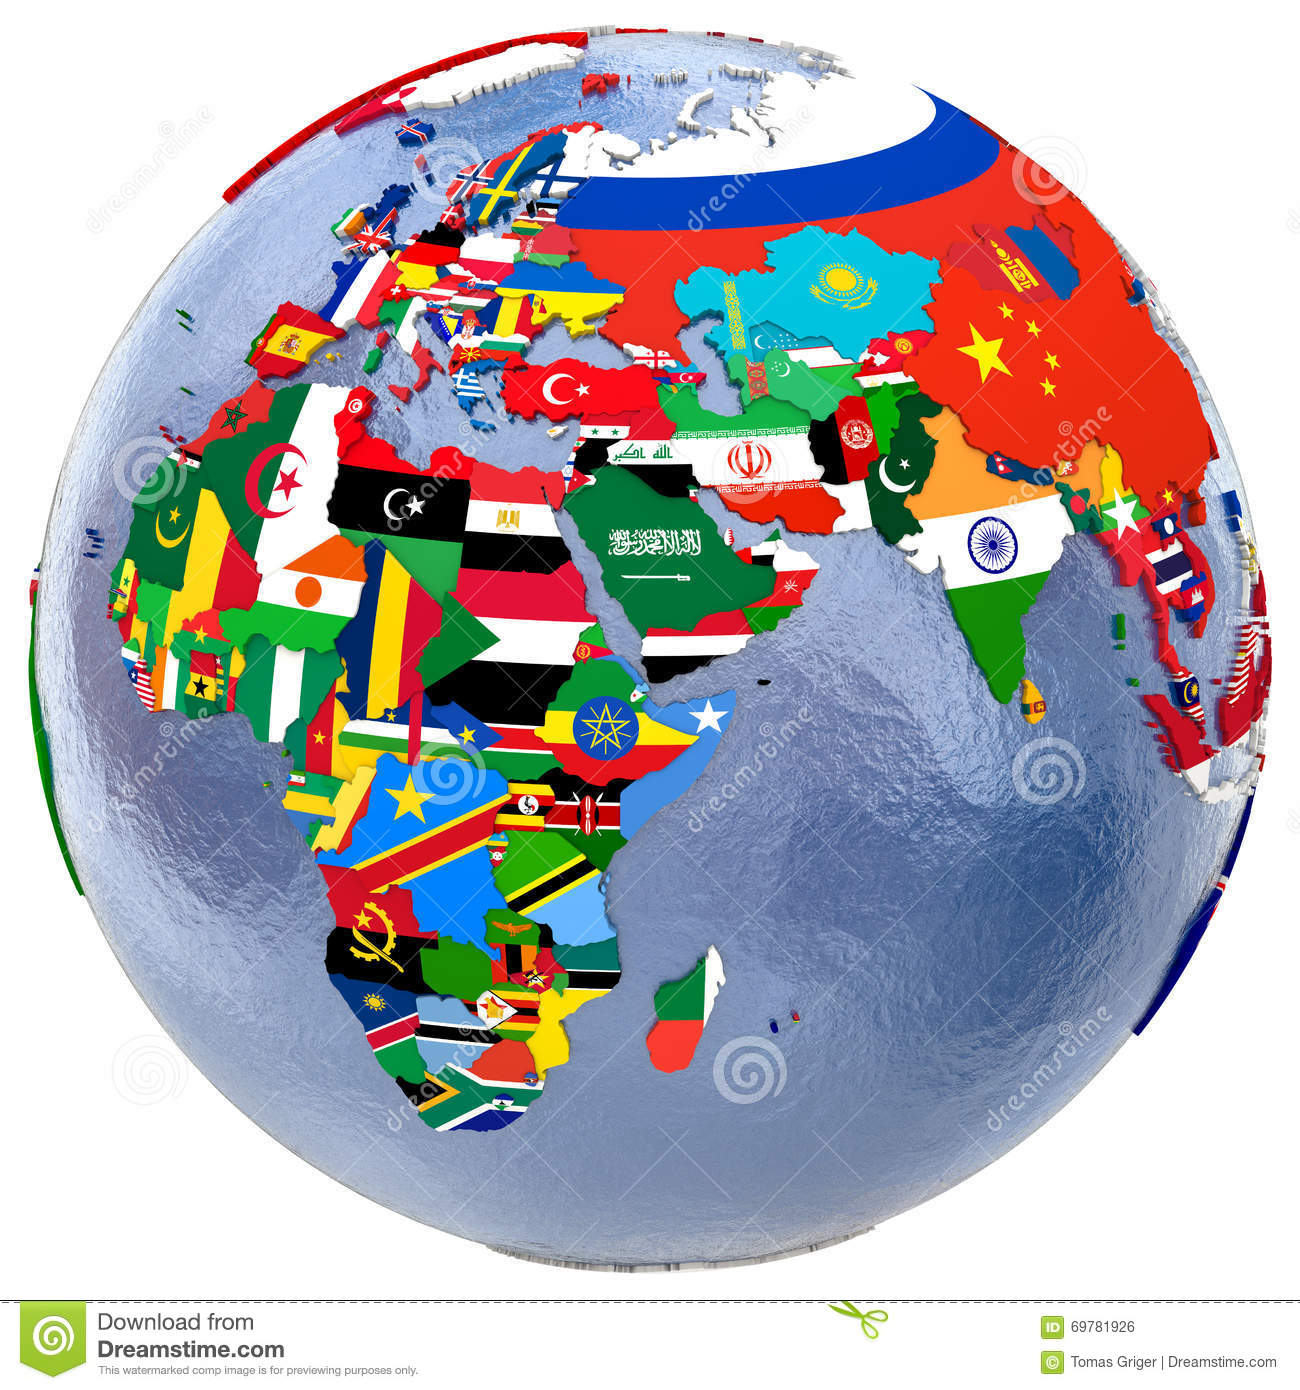 Political world map stock illustration illustration of region political world map gumiabroncs Image collections